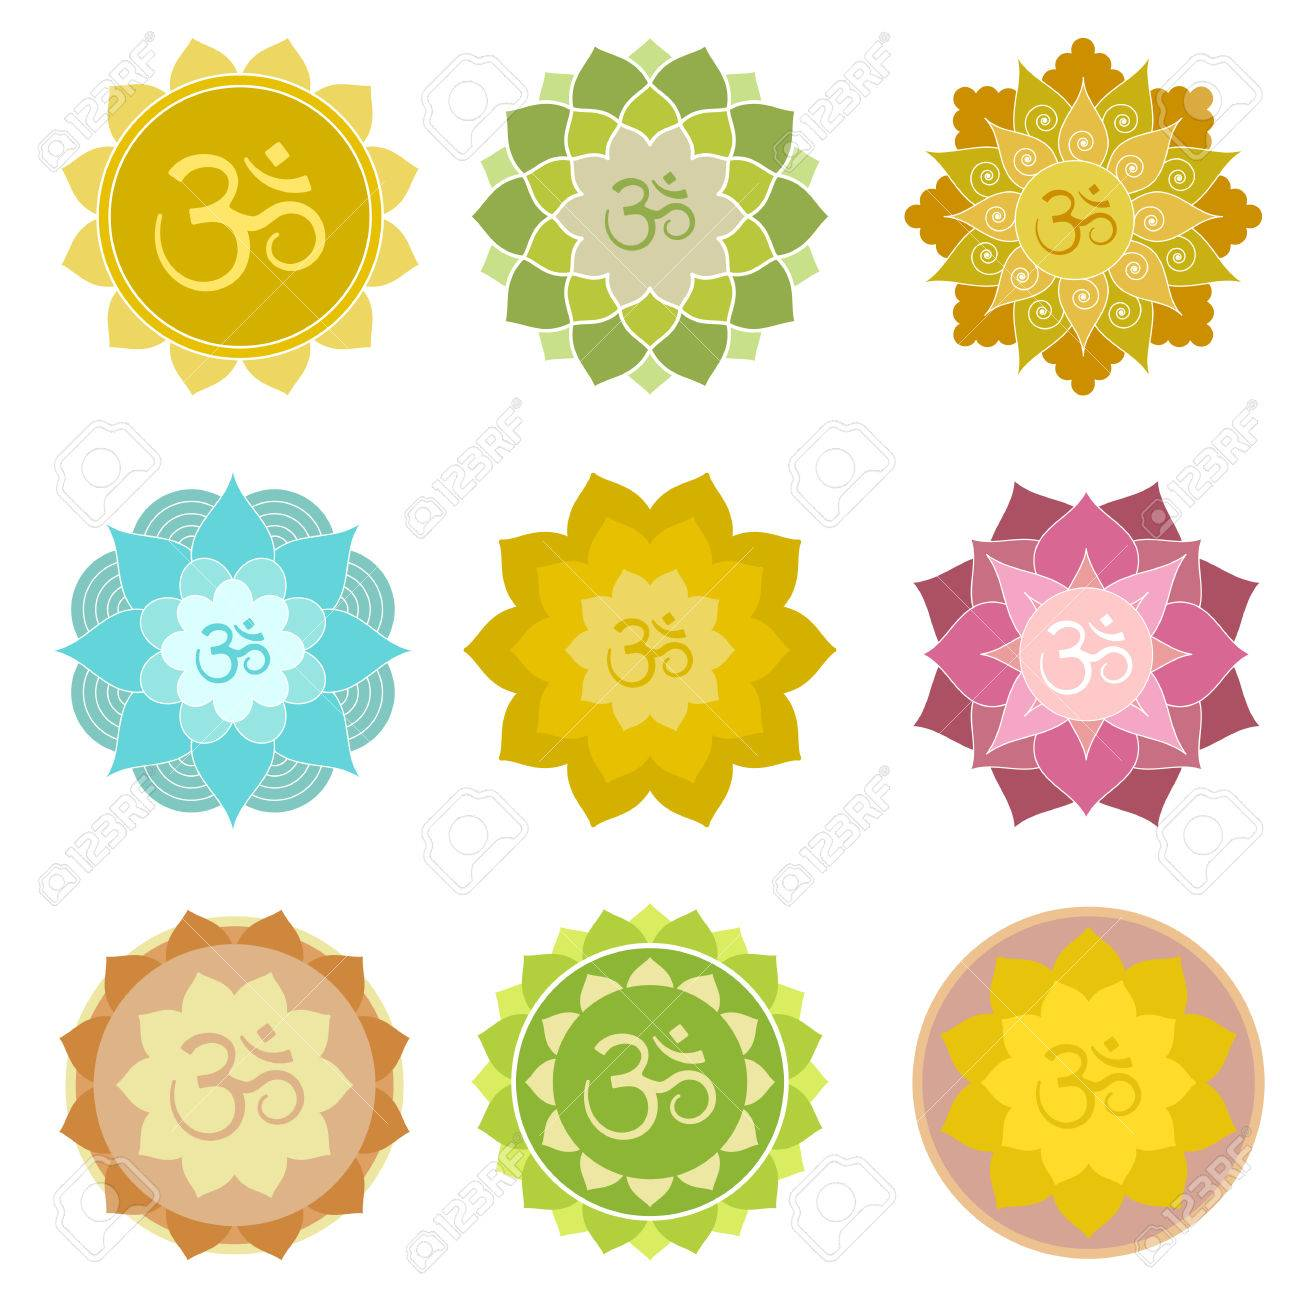 Set Of Om Symbols Isolated Perfect For Yoga And Meditation Practice